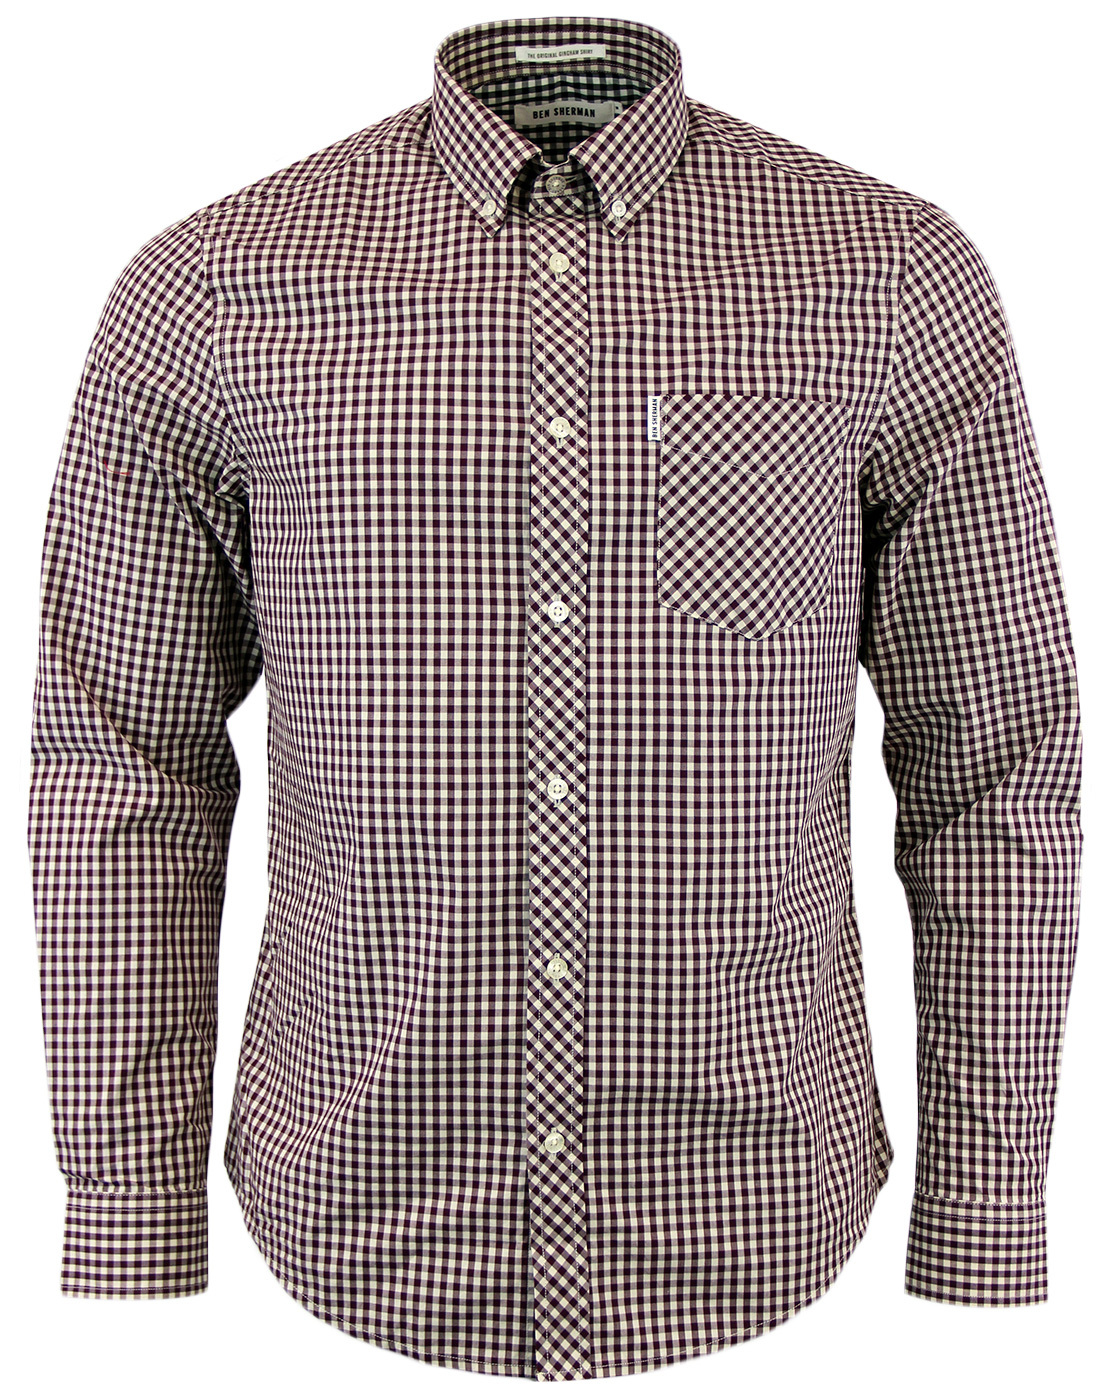 Gingham Shirt BEN SHERMAN Retro Mod 60s Mens Shirt